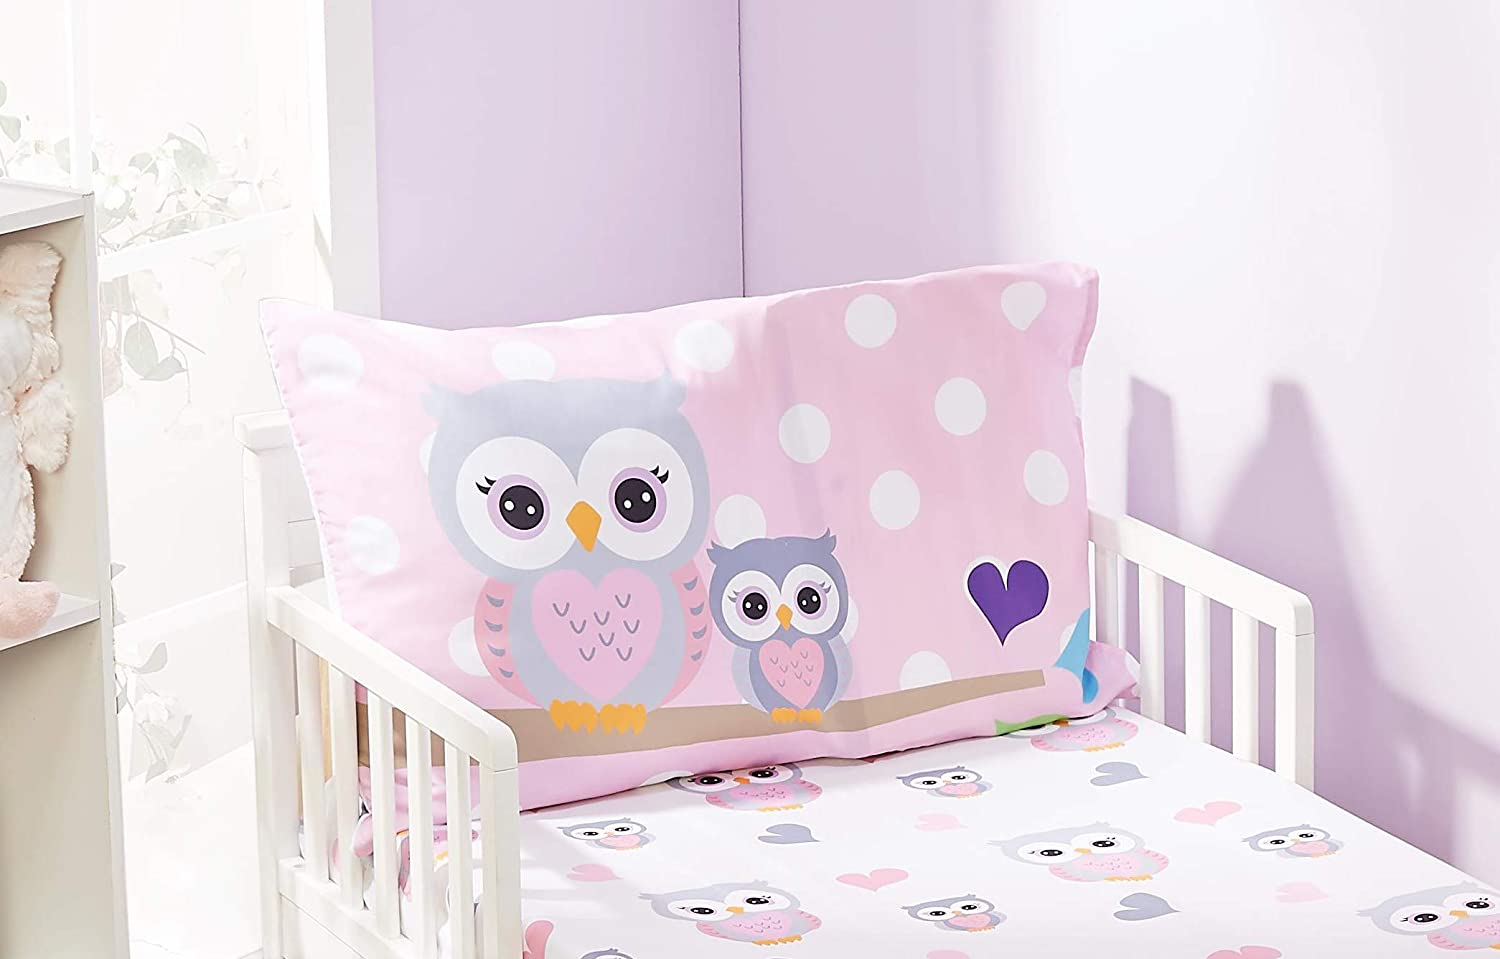 Soft Microfiber Breathable and Hypoallergenic Toddler Sheet Set EVERYDAY KIDS Toddler Fitted Sheet and Pillowcase Set Under Construction